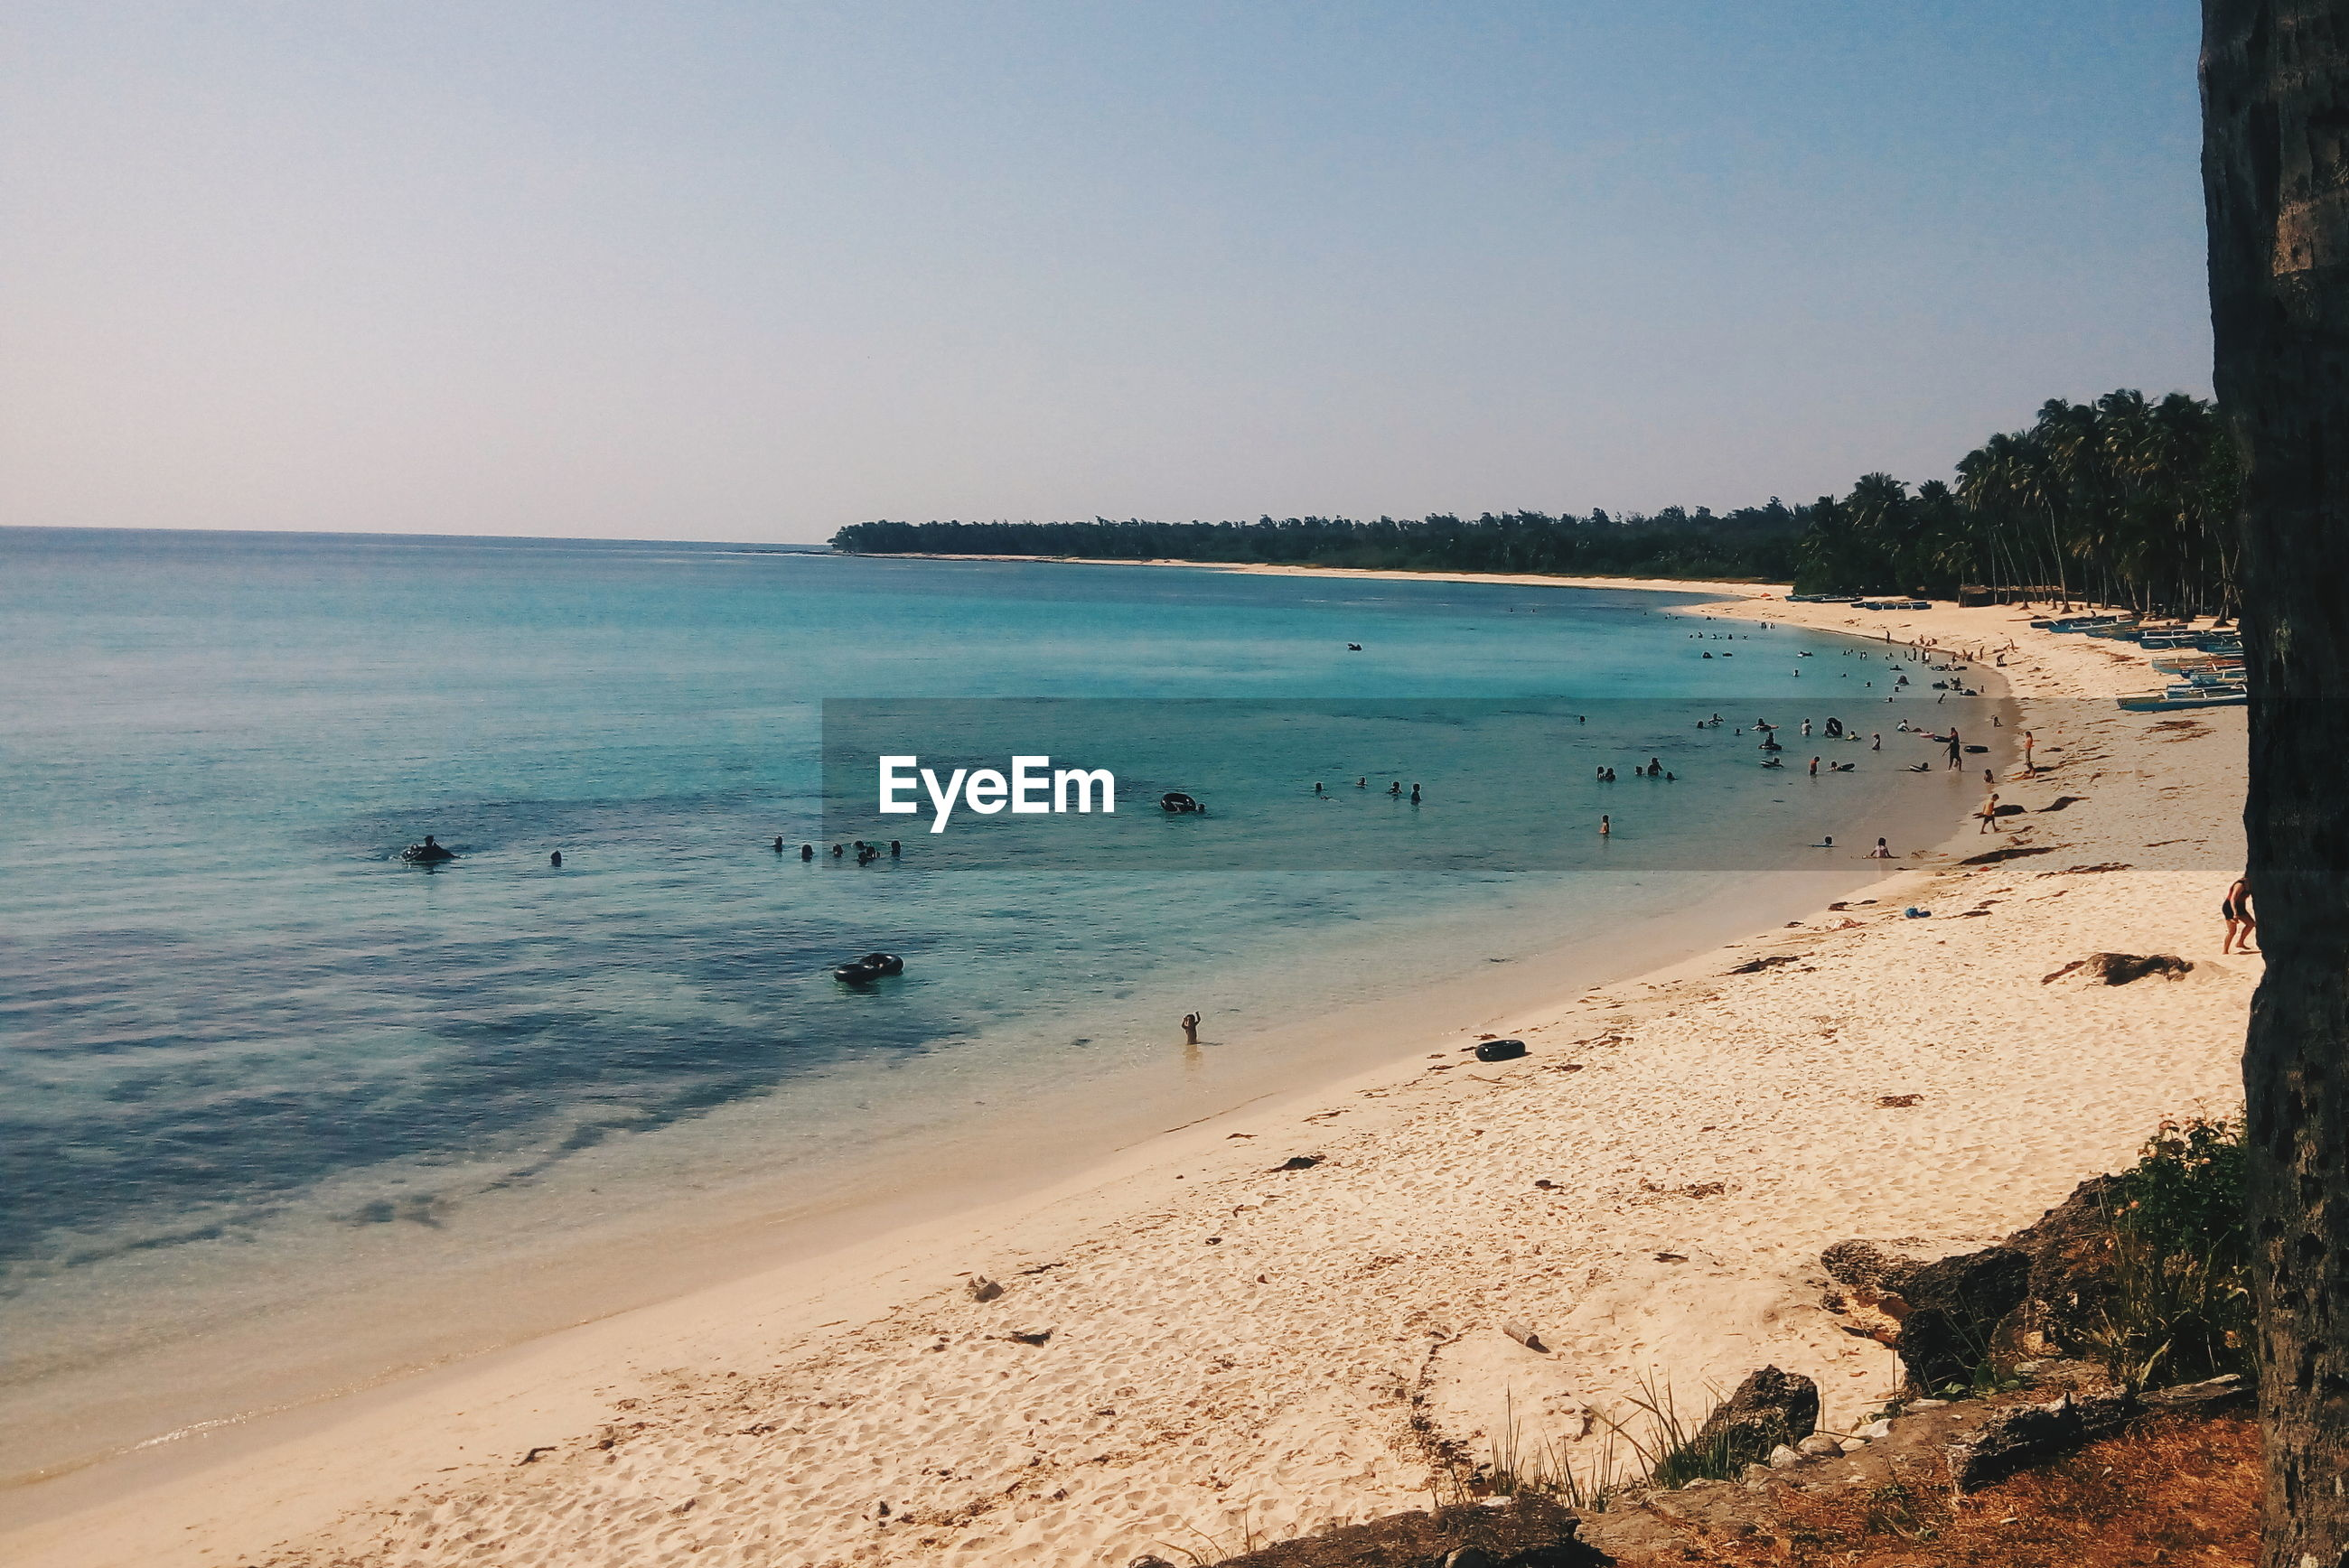 Scenic view of beach against clear sky during sunny day